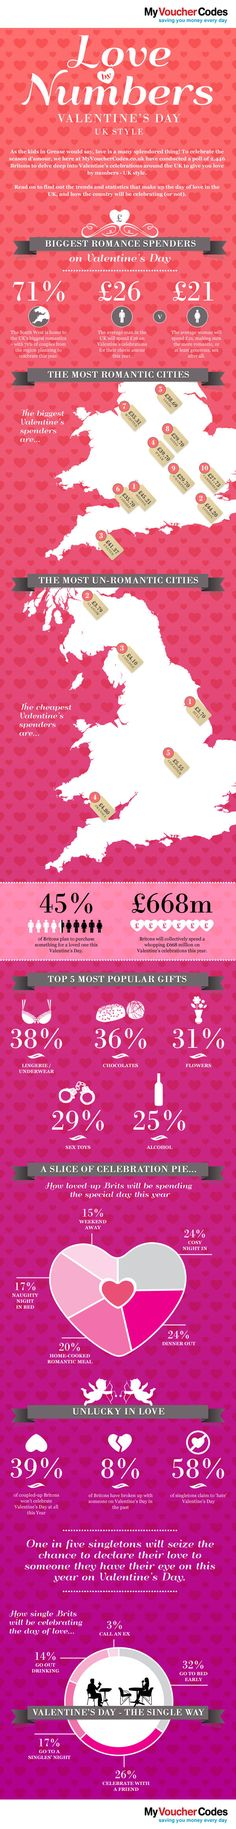 Love by the Numbers [Infographic]